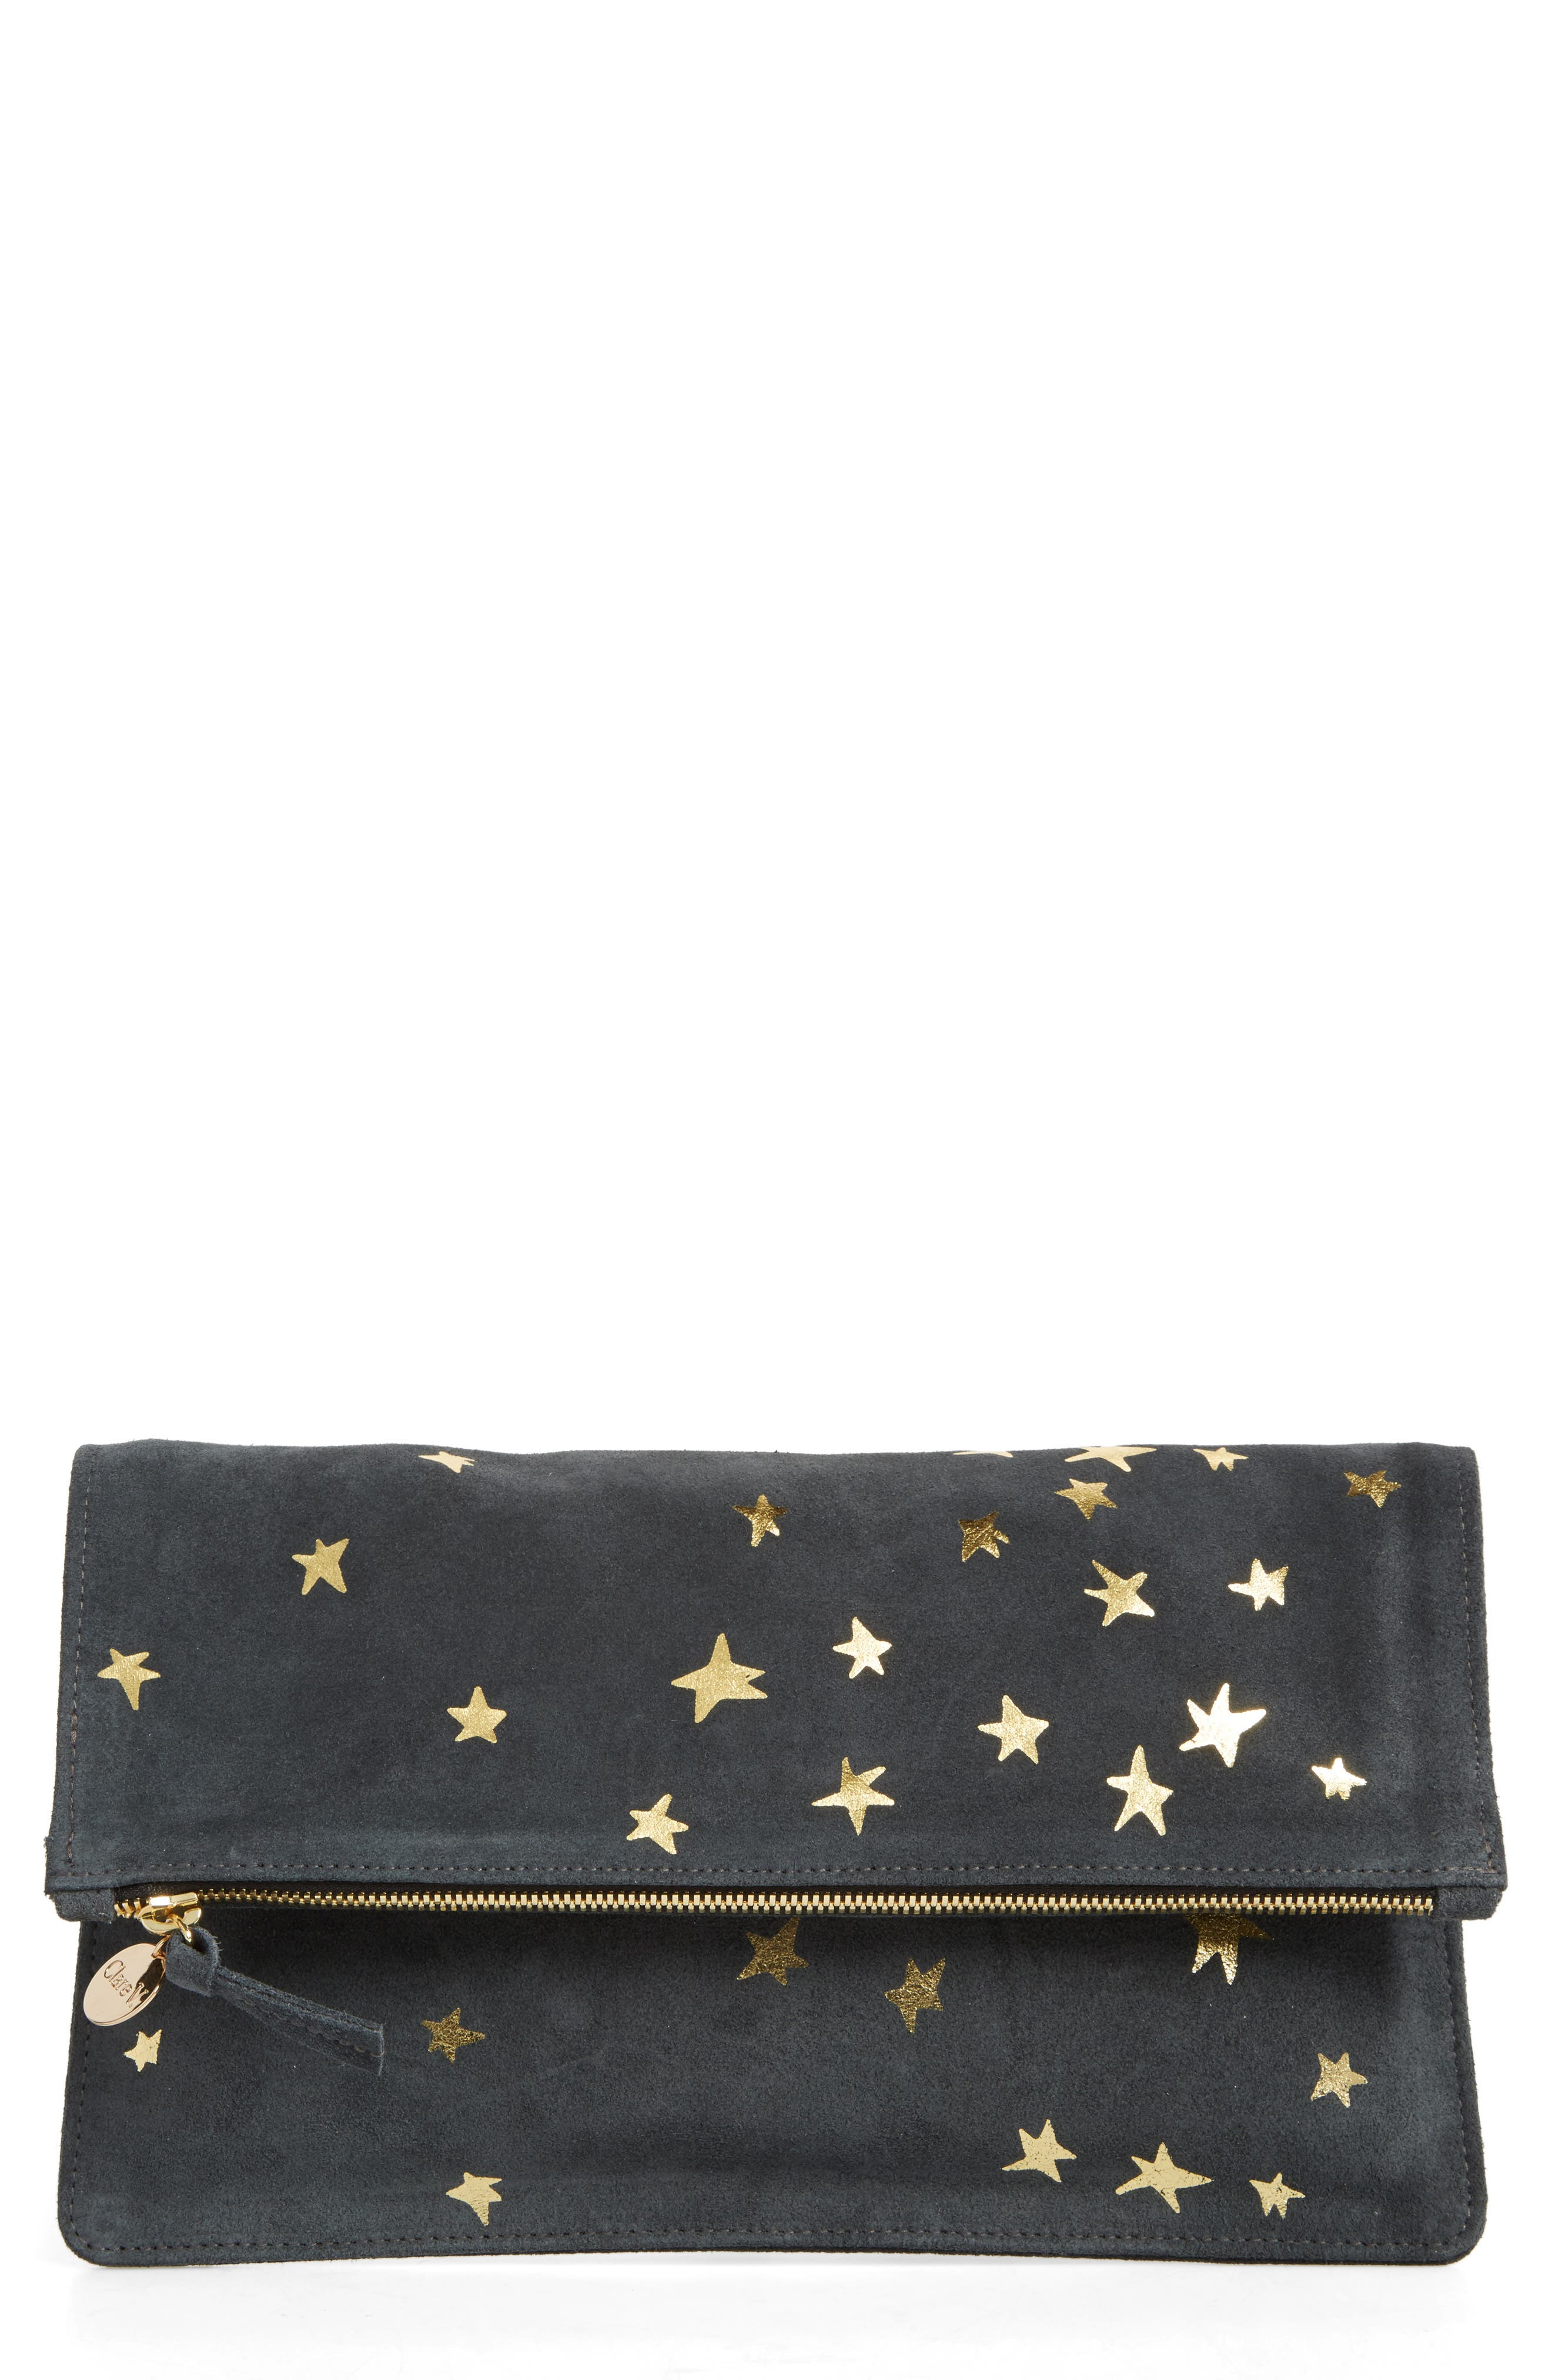 Margot Star Print Foldover Suede Clutch,                         Main,                         color, 020